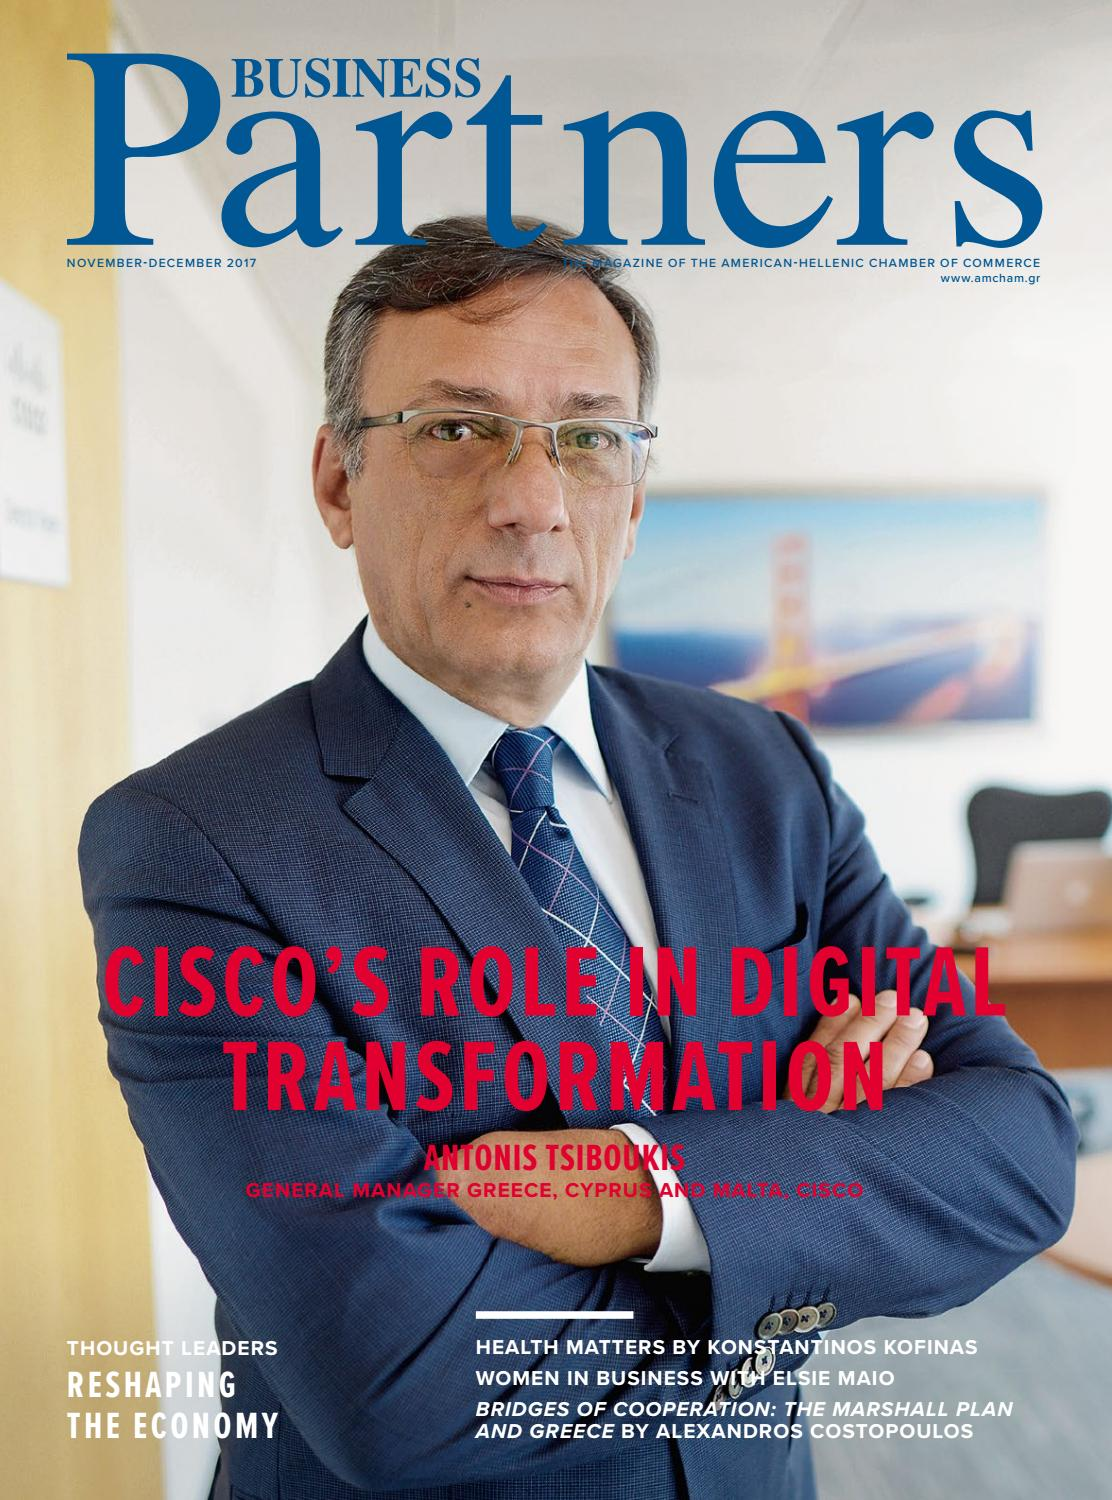 Business Partners November December 2017 By Raymond Matera Basic Electrical Characteristics Ininins English Blog Publishing Issuu